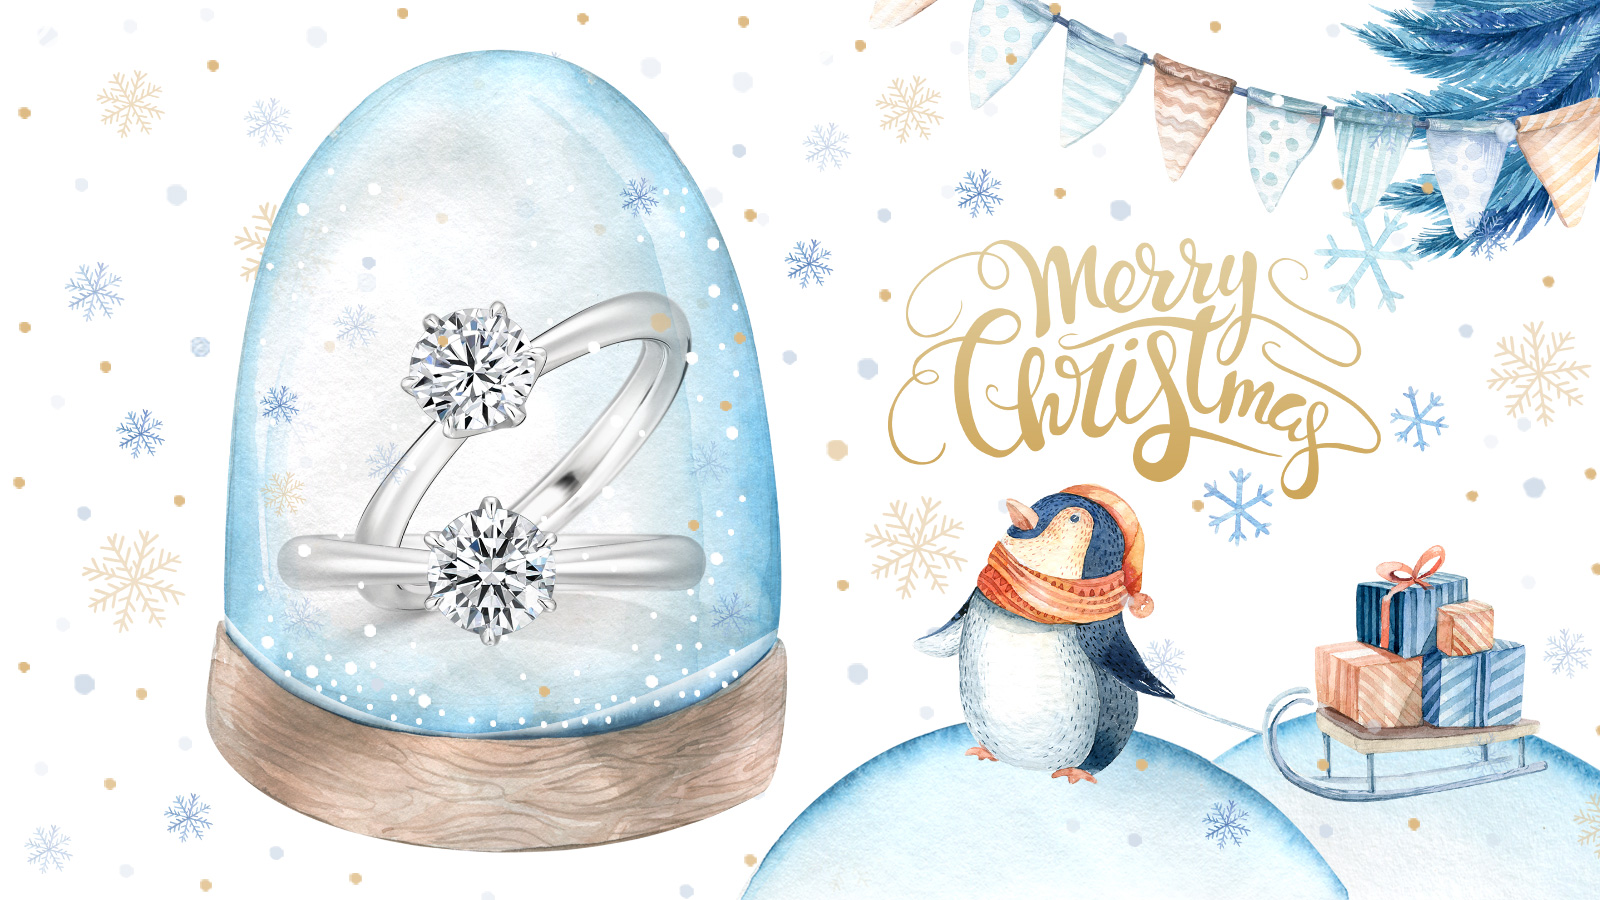 christmas_image_banner_greenvader1600x900px_20161202